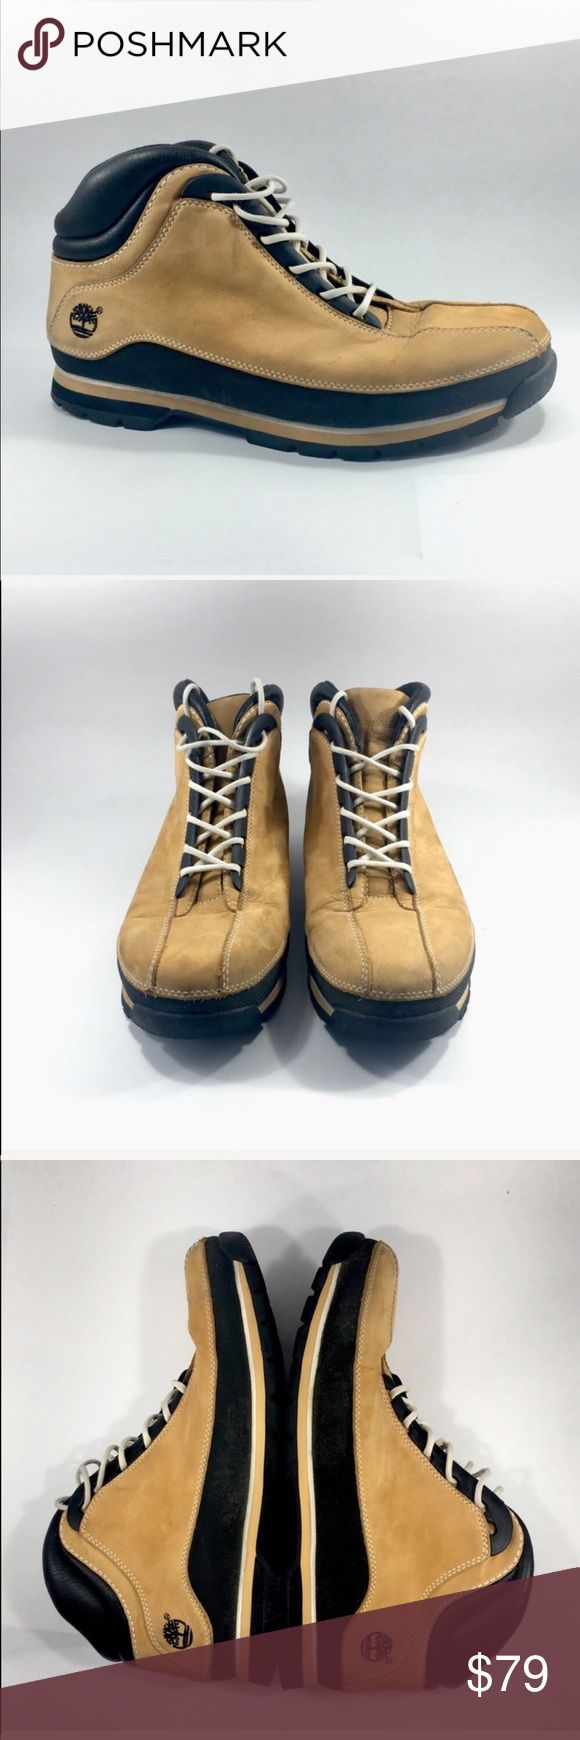 """Timberland 6"""" Premium Boots ♦️ Timberland 6"""" Premium Boots ♦️Pre-owned/great condition  ♦️Men's size 11 ♦️No trades  ♦️100% authentic  ♦️Pricing will not be discussed in the comments. If interested please use the offer button. Timberland Shoes Boots"""